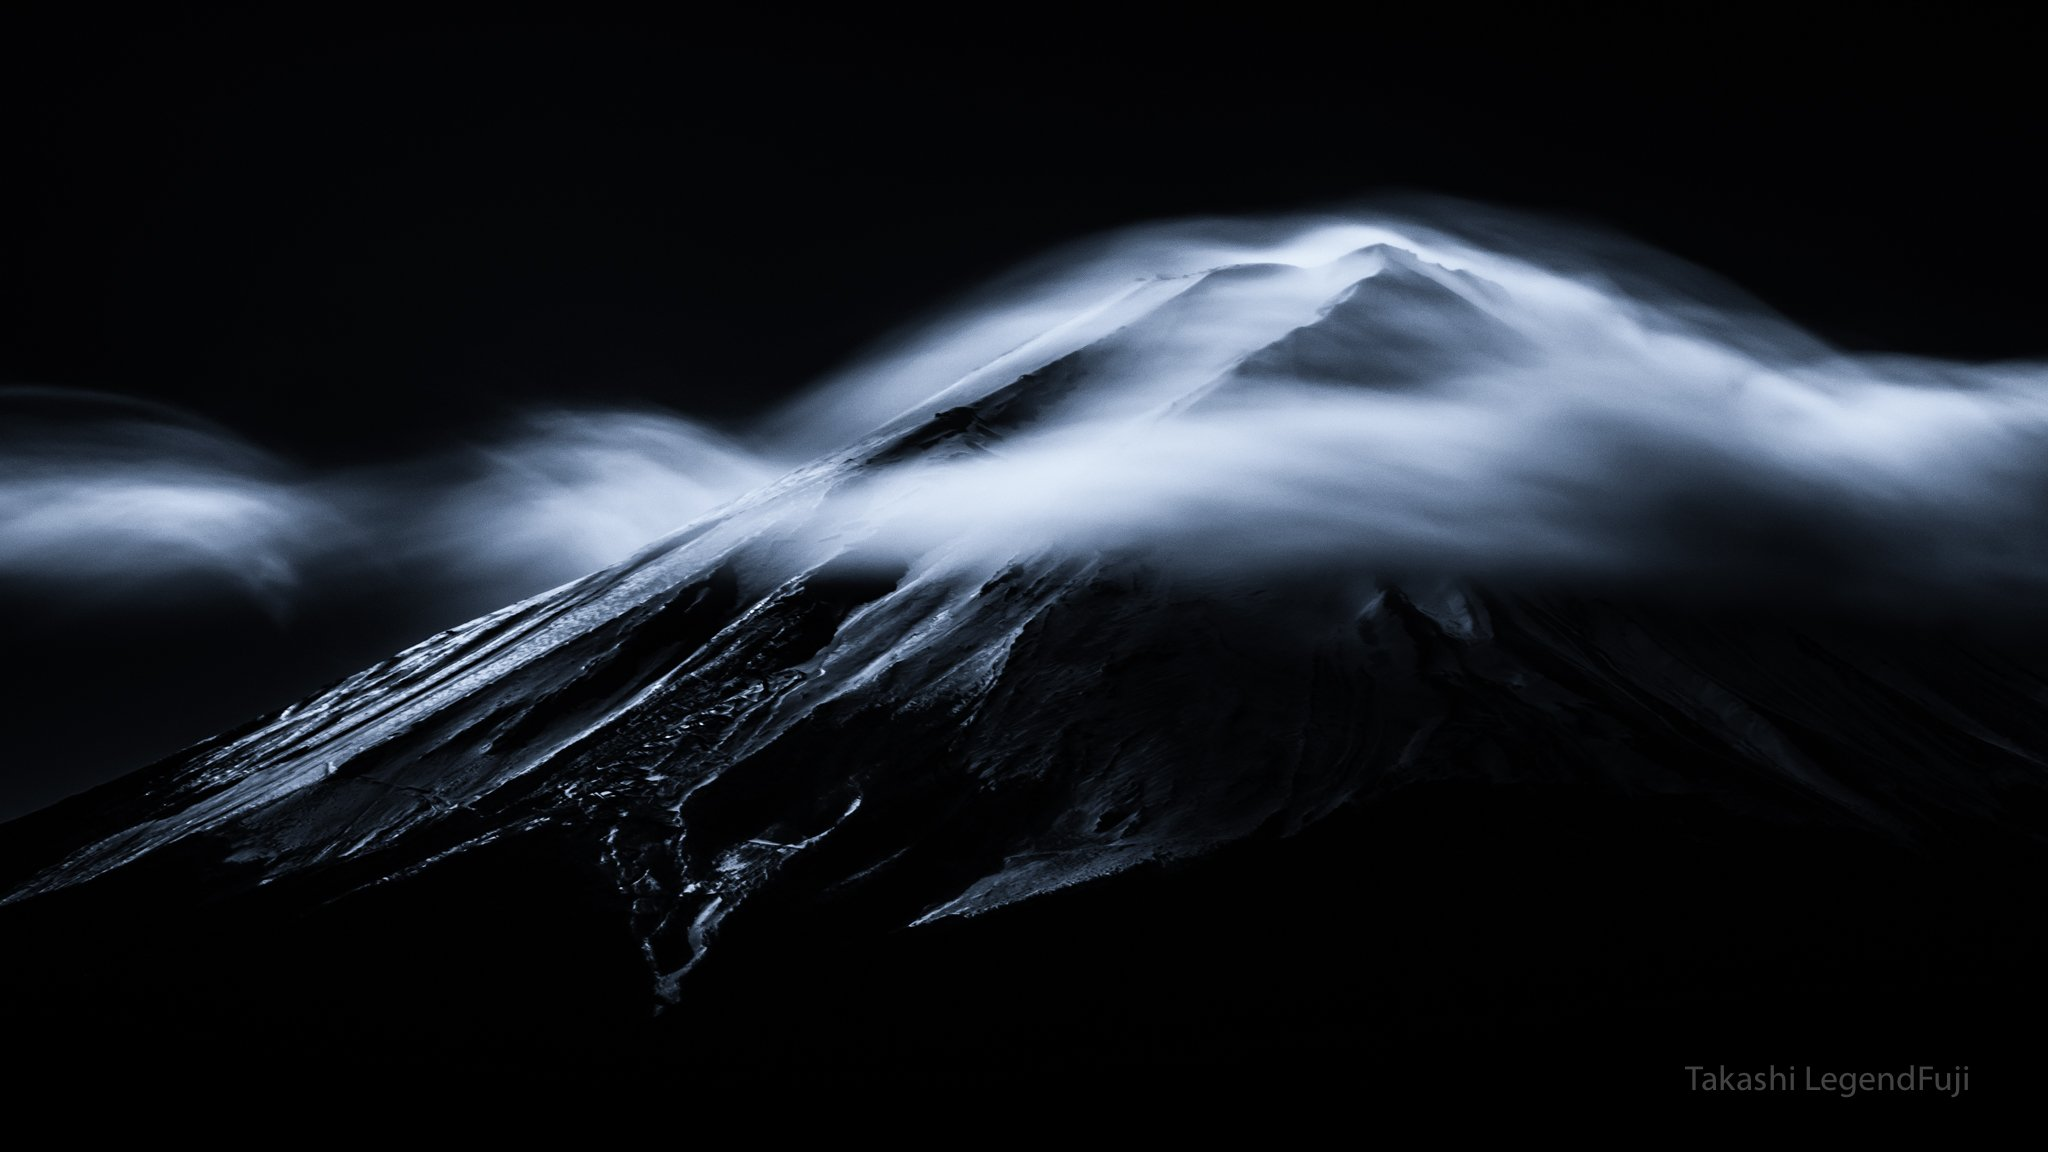 fuji,mountain,japan,clouds,sky,landscapes,snow,flow,time,amazing,beautiful,wonderful,black and white,monochrome,, Takashi